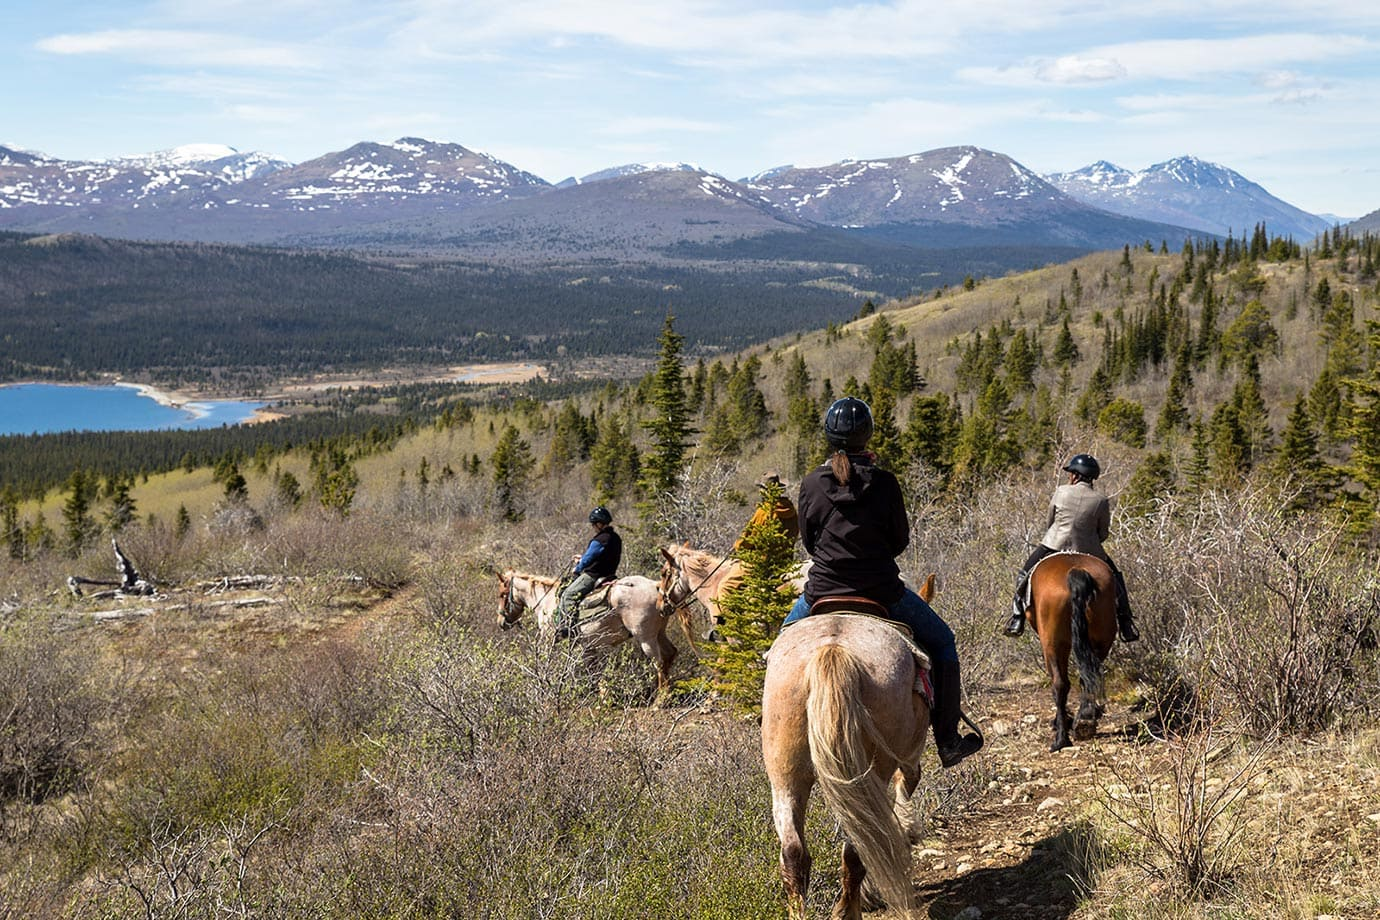 Horse riding in Canada